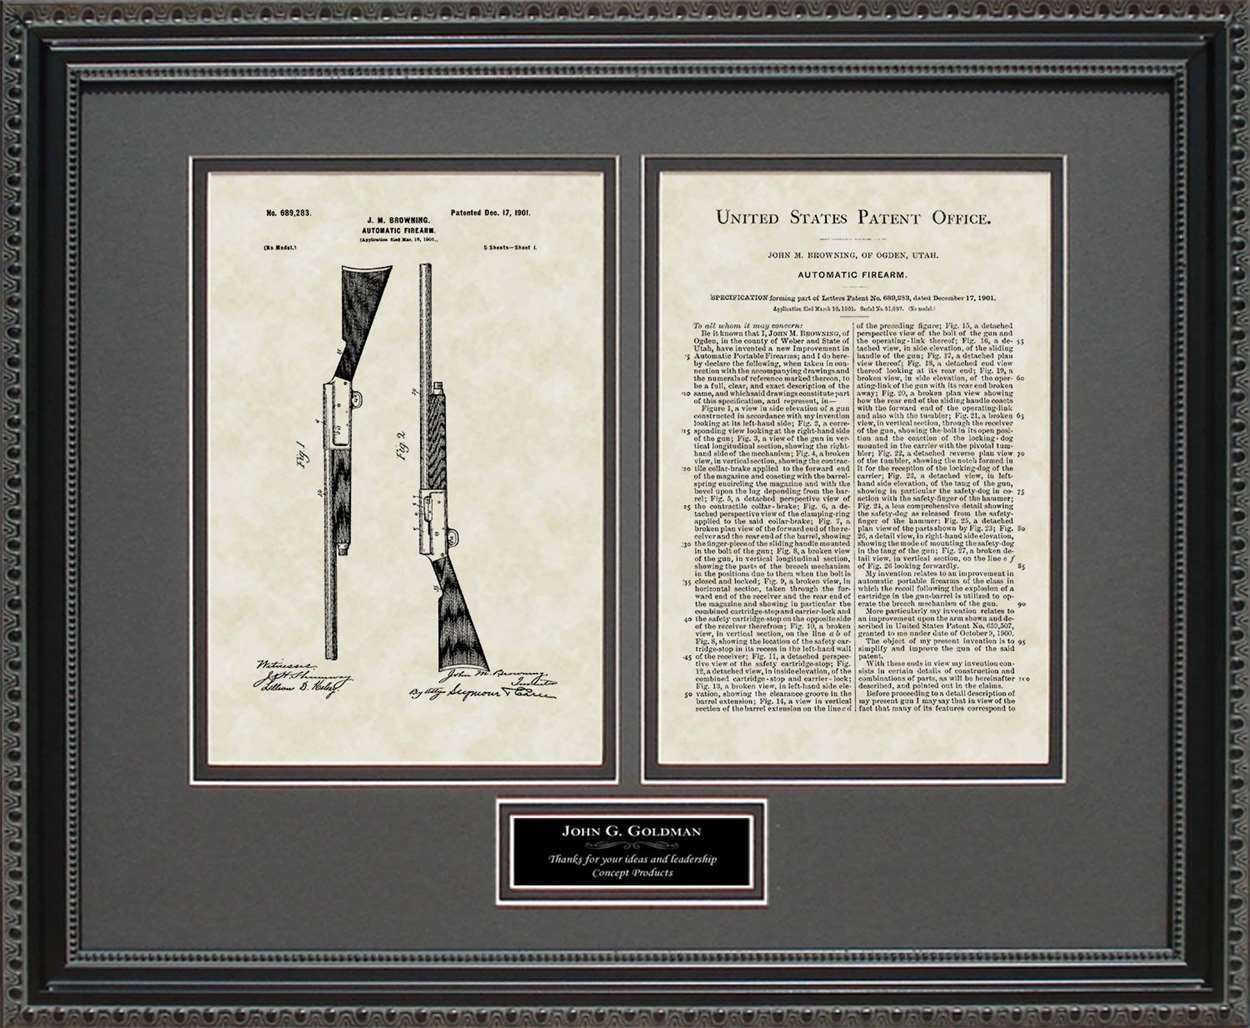 Personalized Auto 5 Shotgun Patent, Art & Copy, Browning, 1901